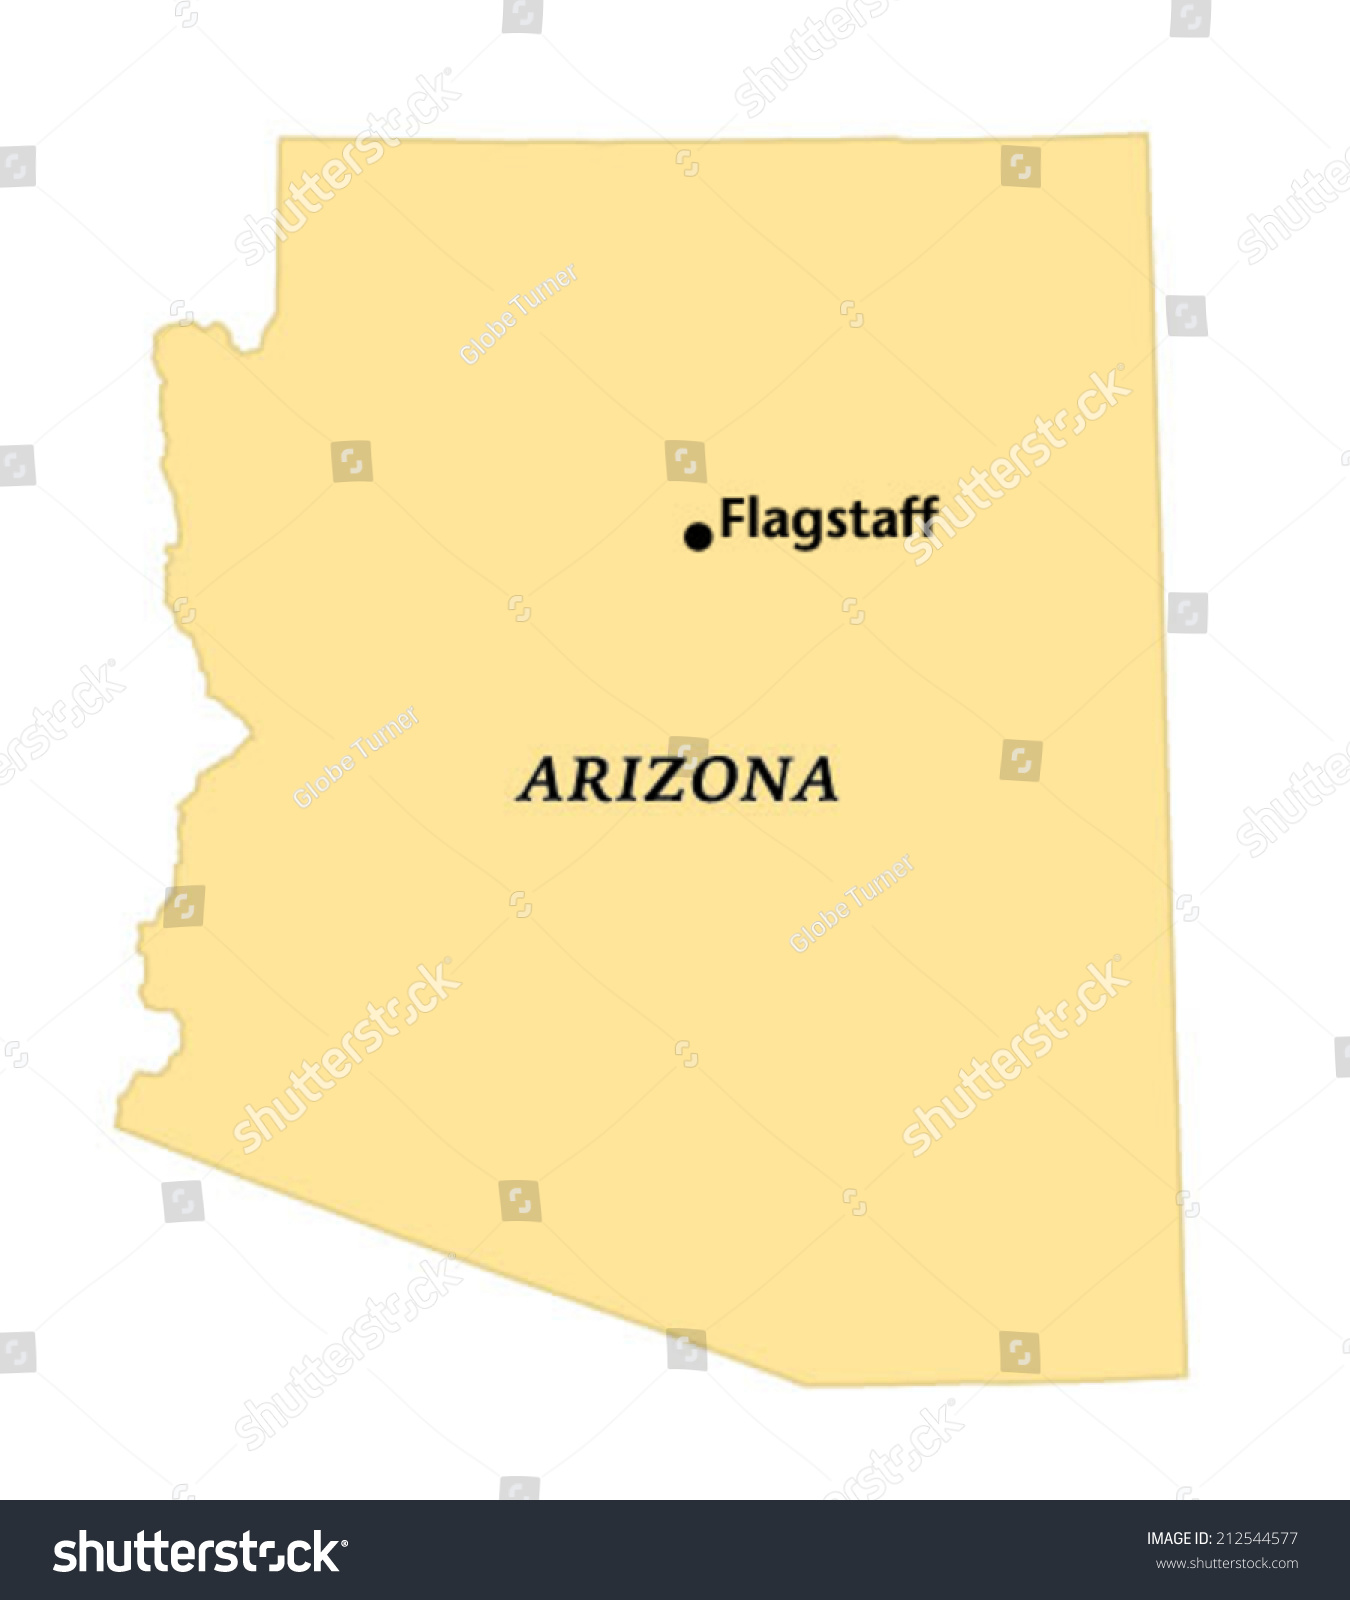 Map Of Flagstaff Arizona.Flagstaff Arizona Locate Map Stock Vector Royalty Free 212544577